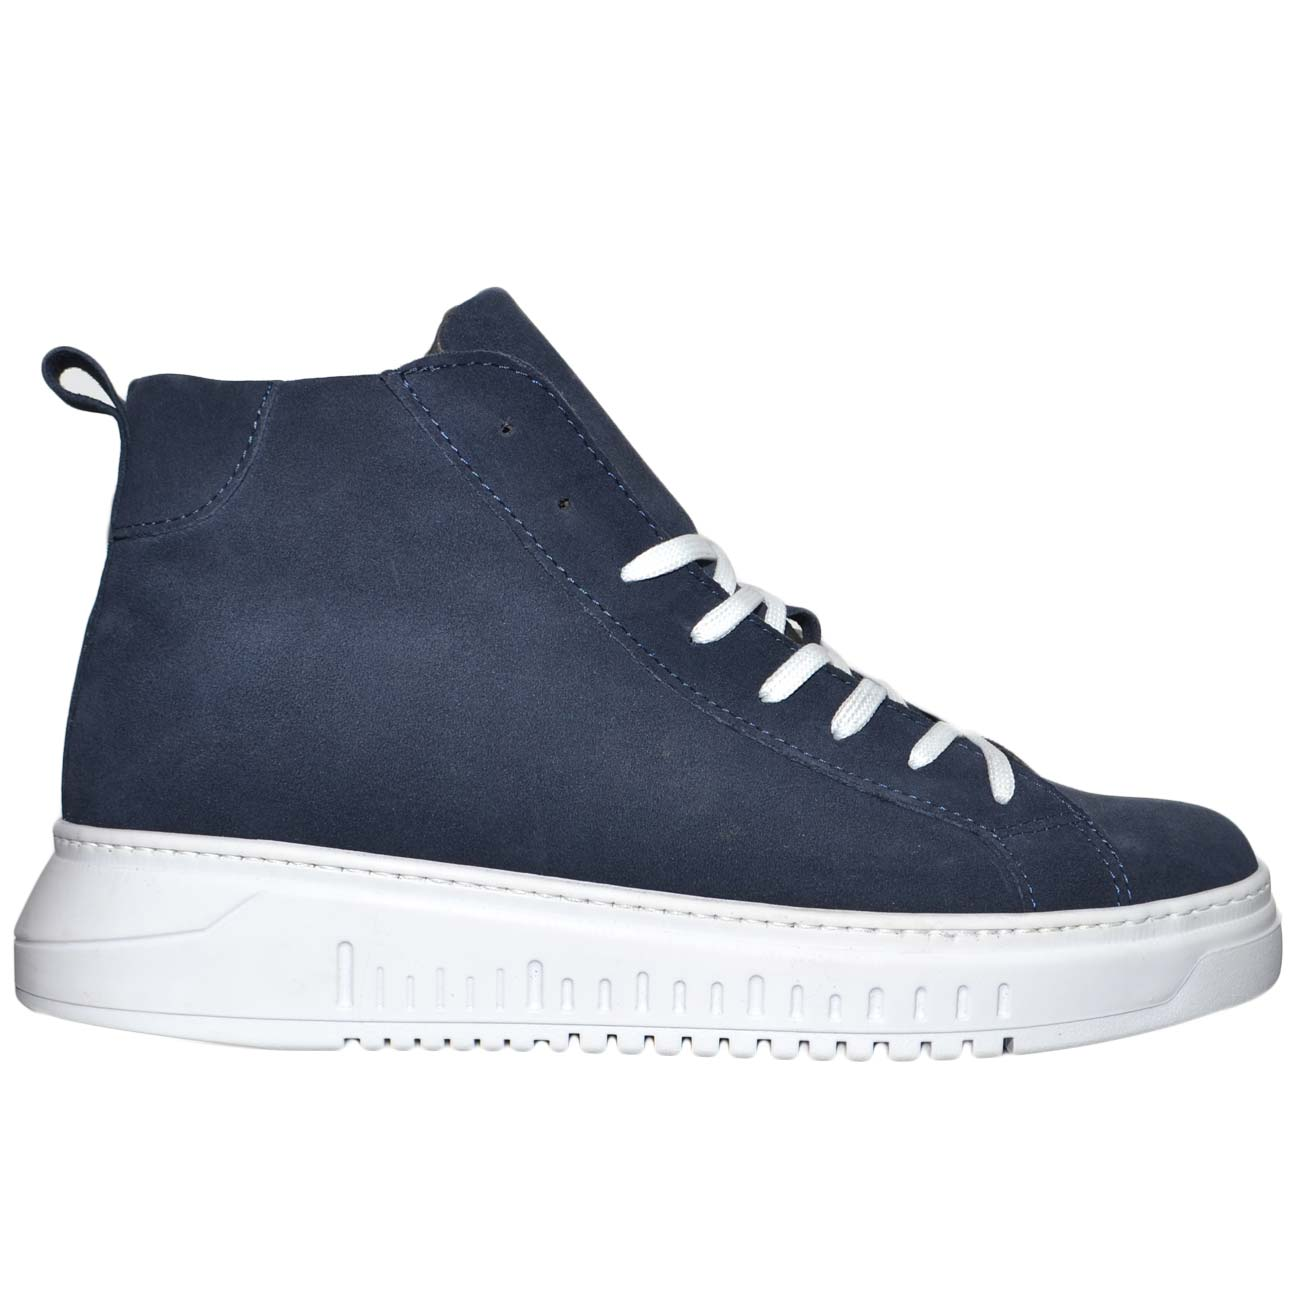 Sneakers uomo alta a stivaletto linea basic in vera pelle camoscio blu fondo army bianco antishock made in italy.